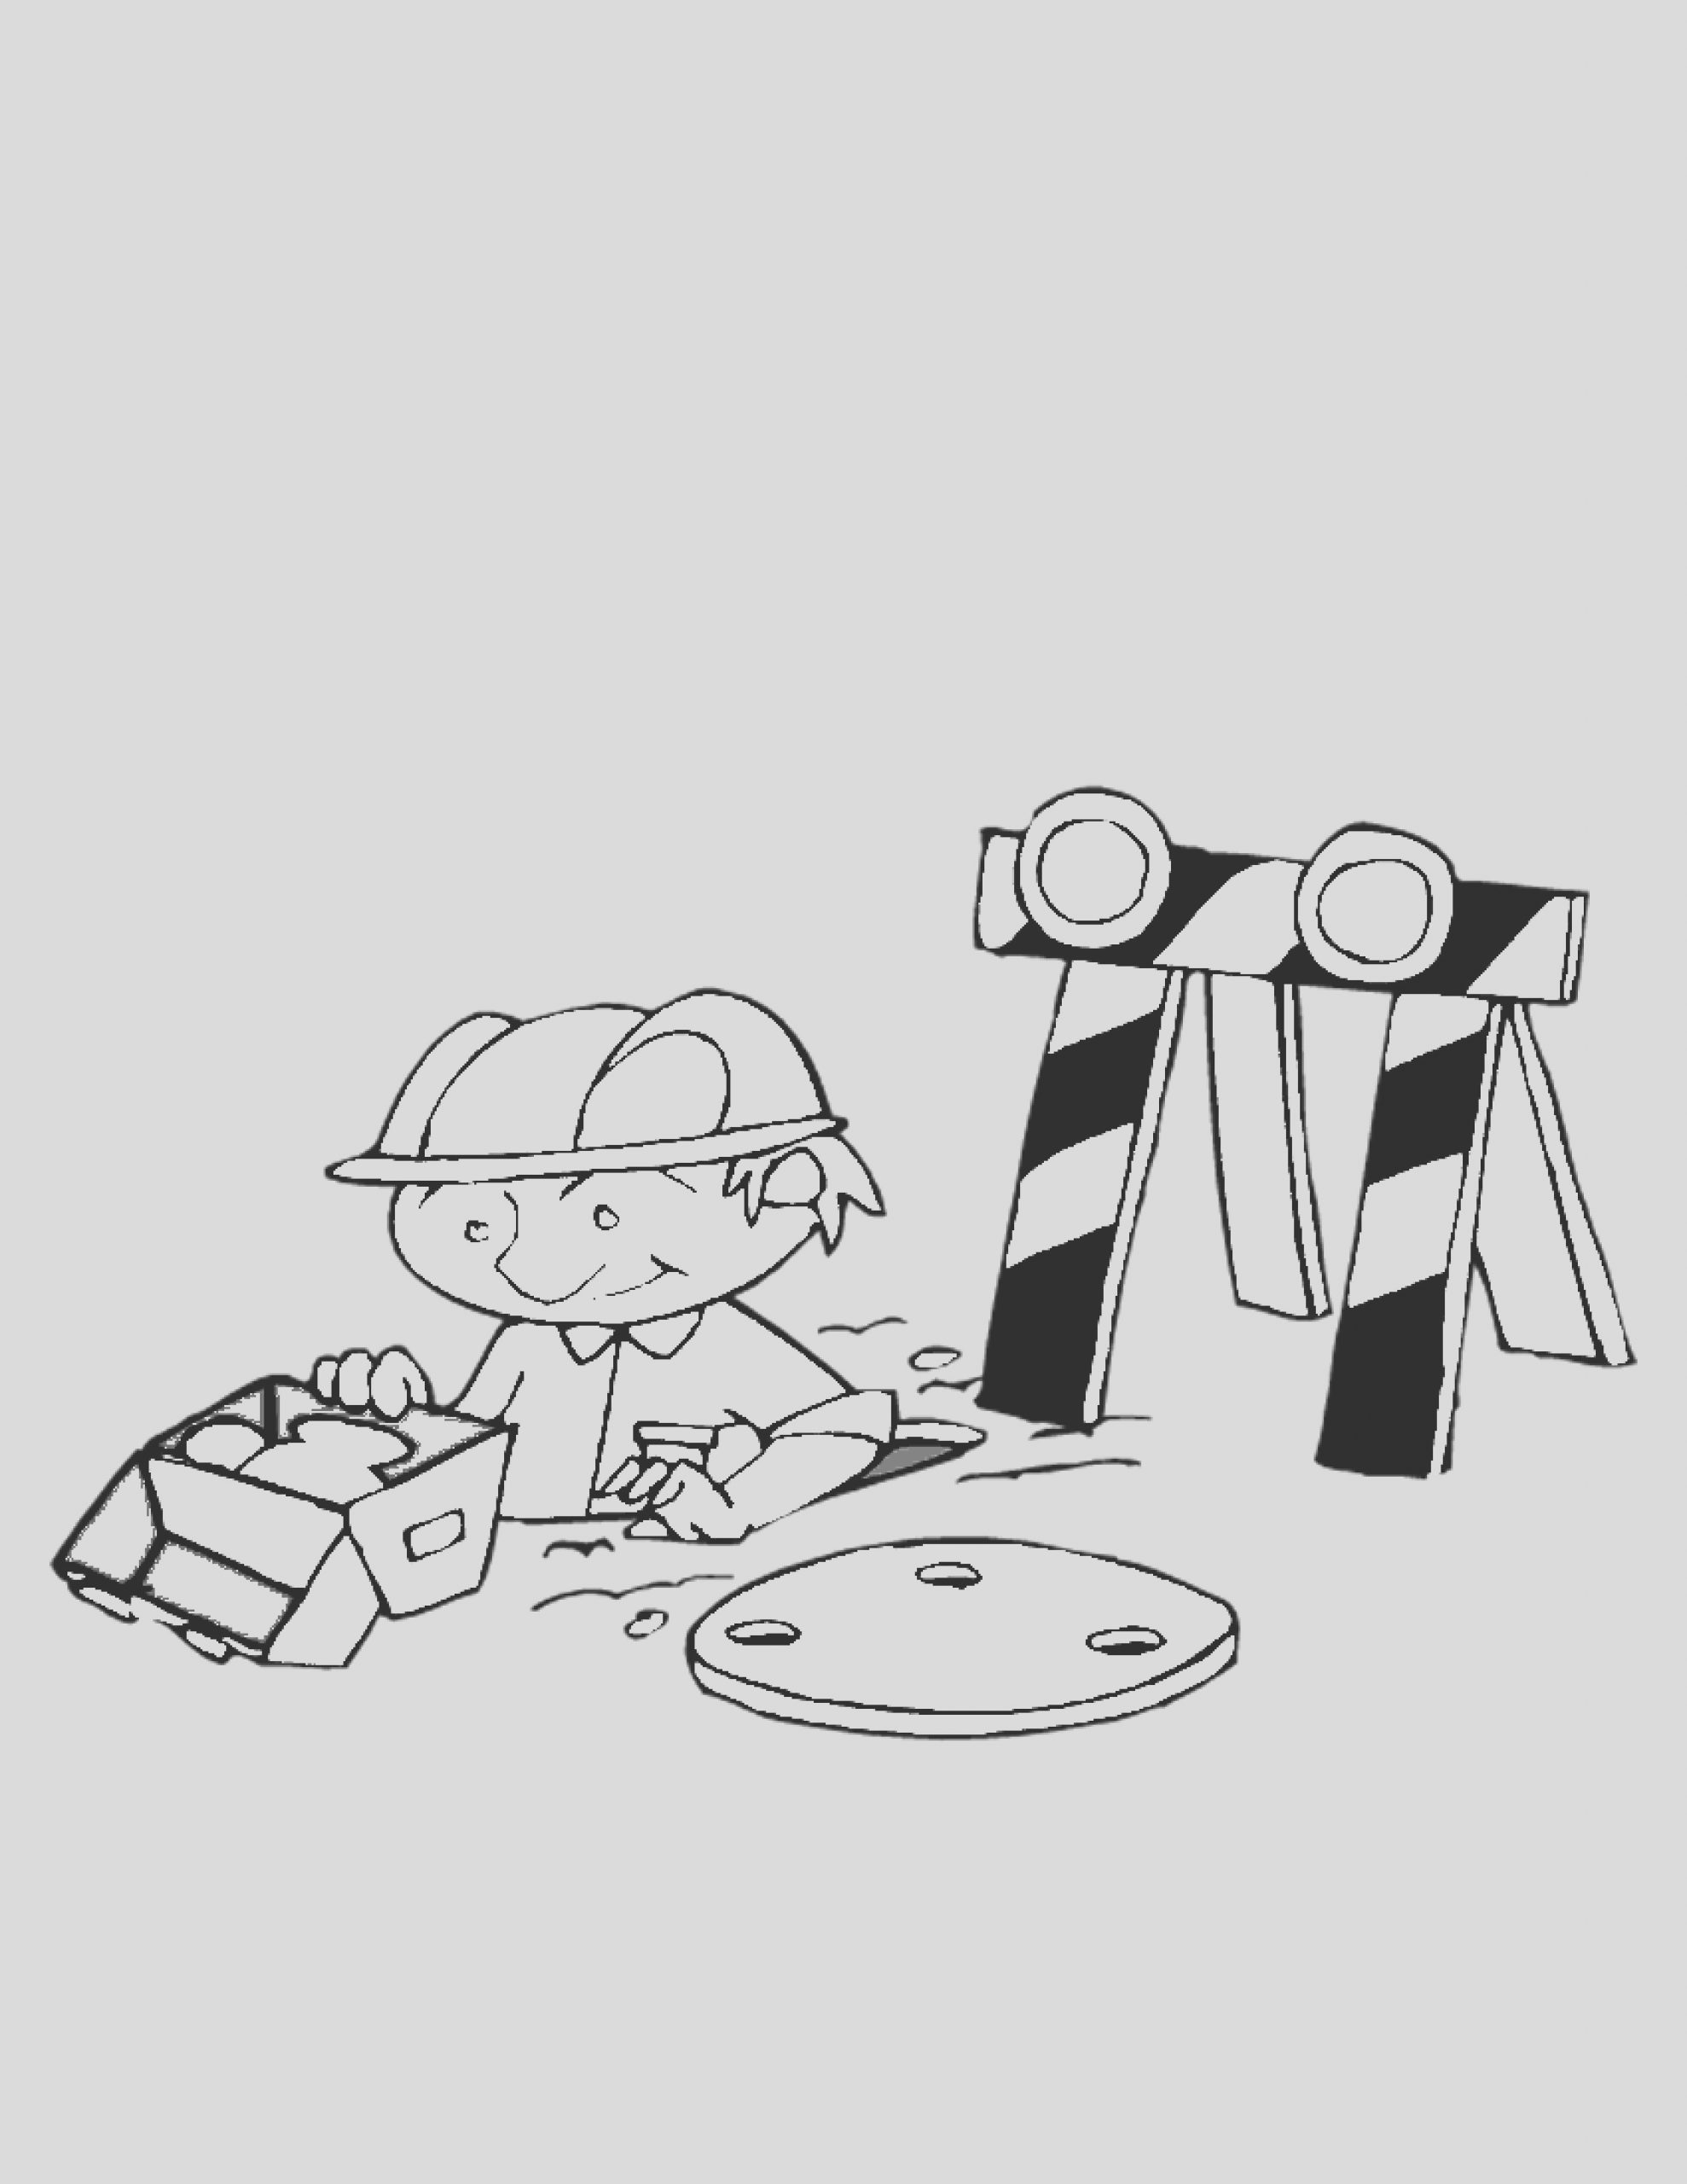 construction trucks equipment coloring pages for kids printable activity sheet for free 9 2